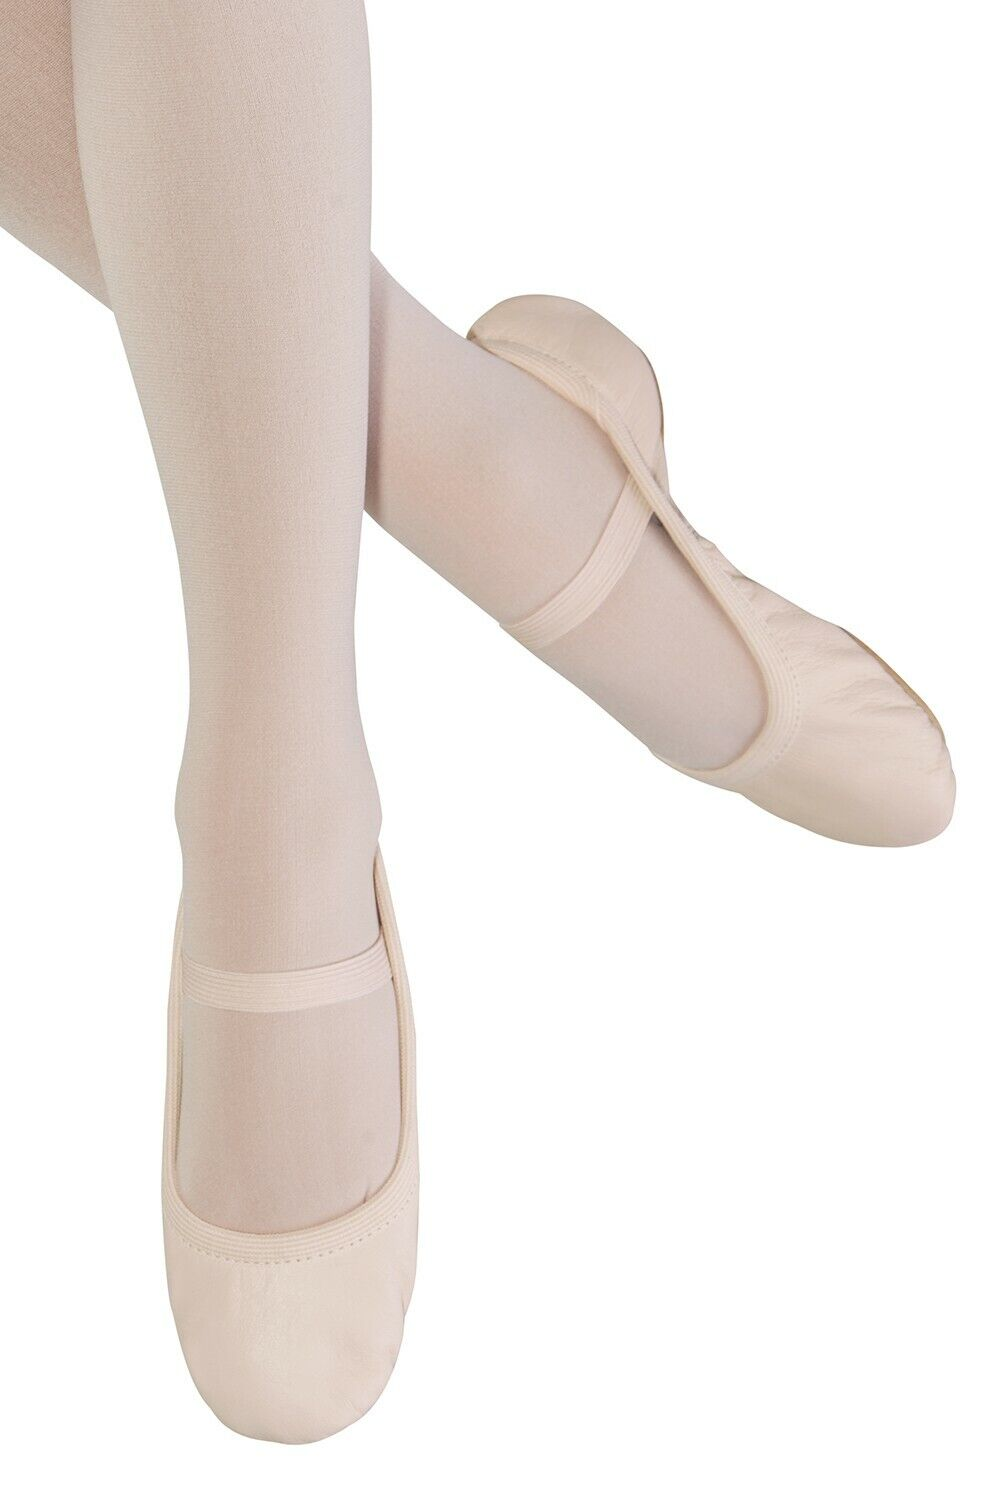 Bloch SO249G Giselle , no drawstring, full sole pink leather ballet shoes